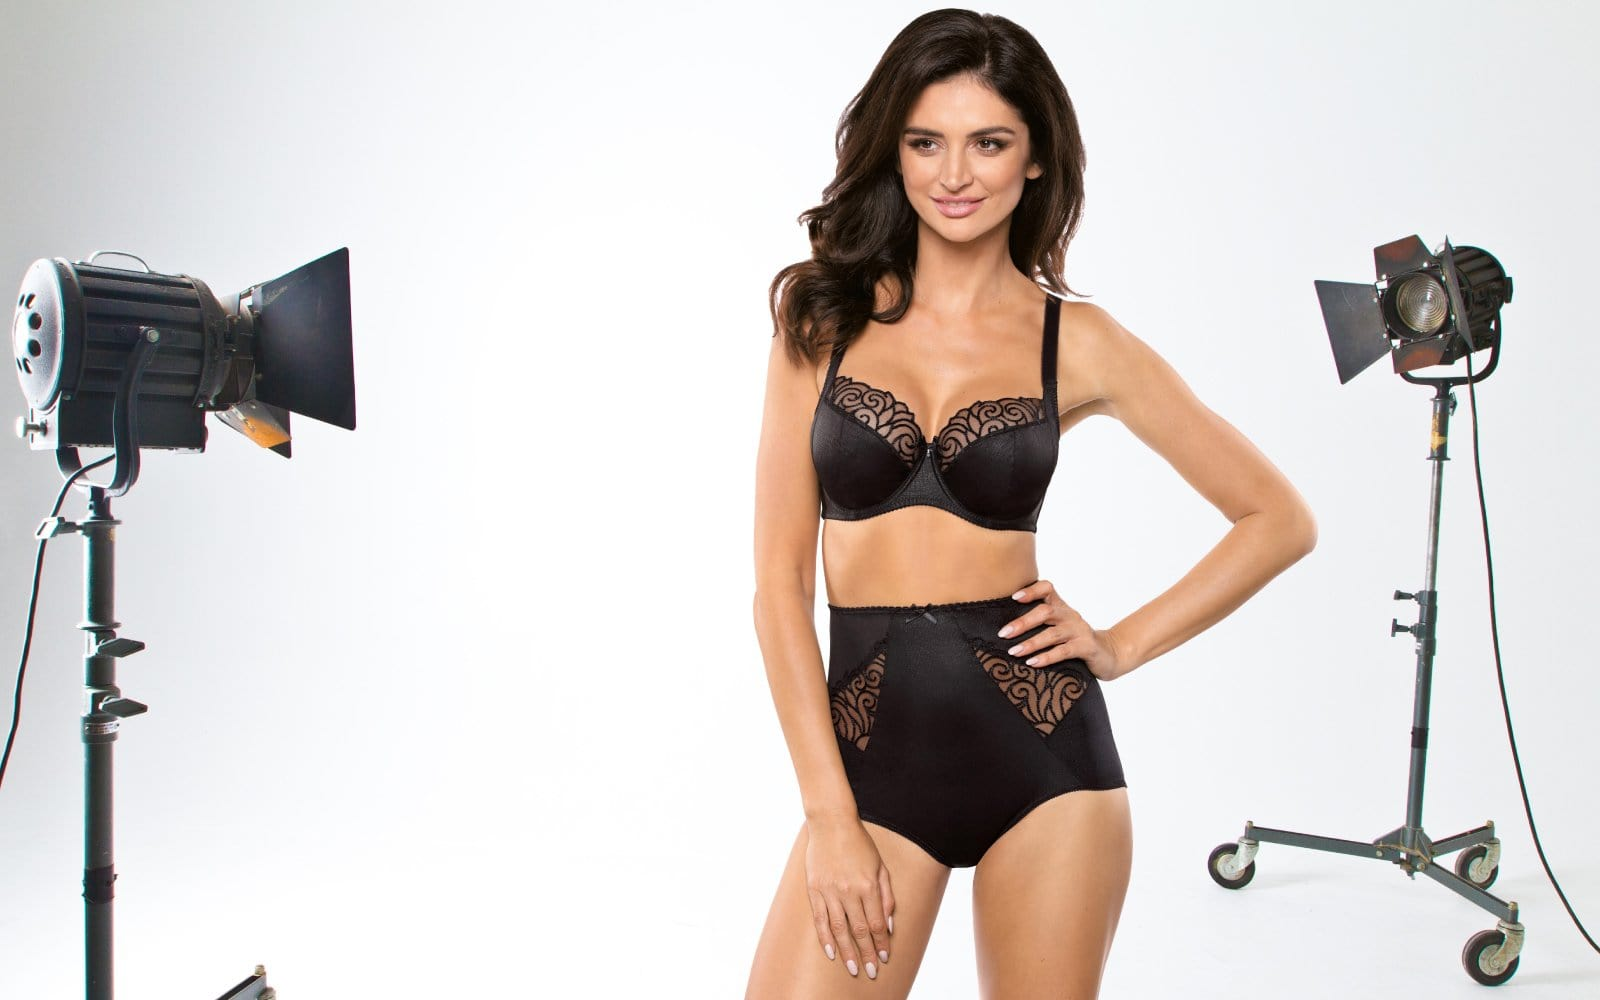 New from Gorteks: irresistible fall lingerie up to a J cup